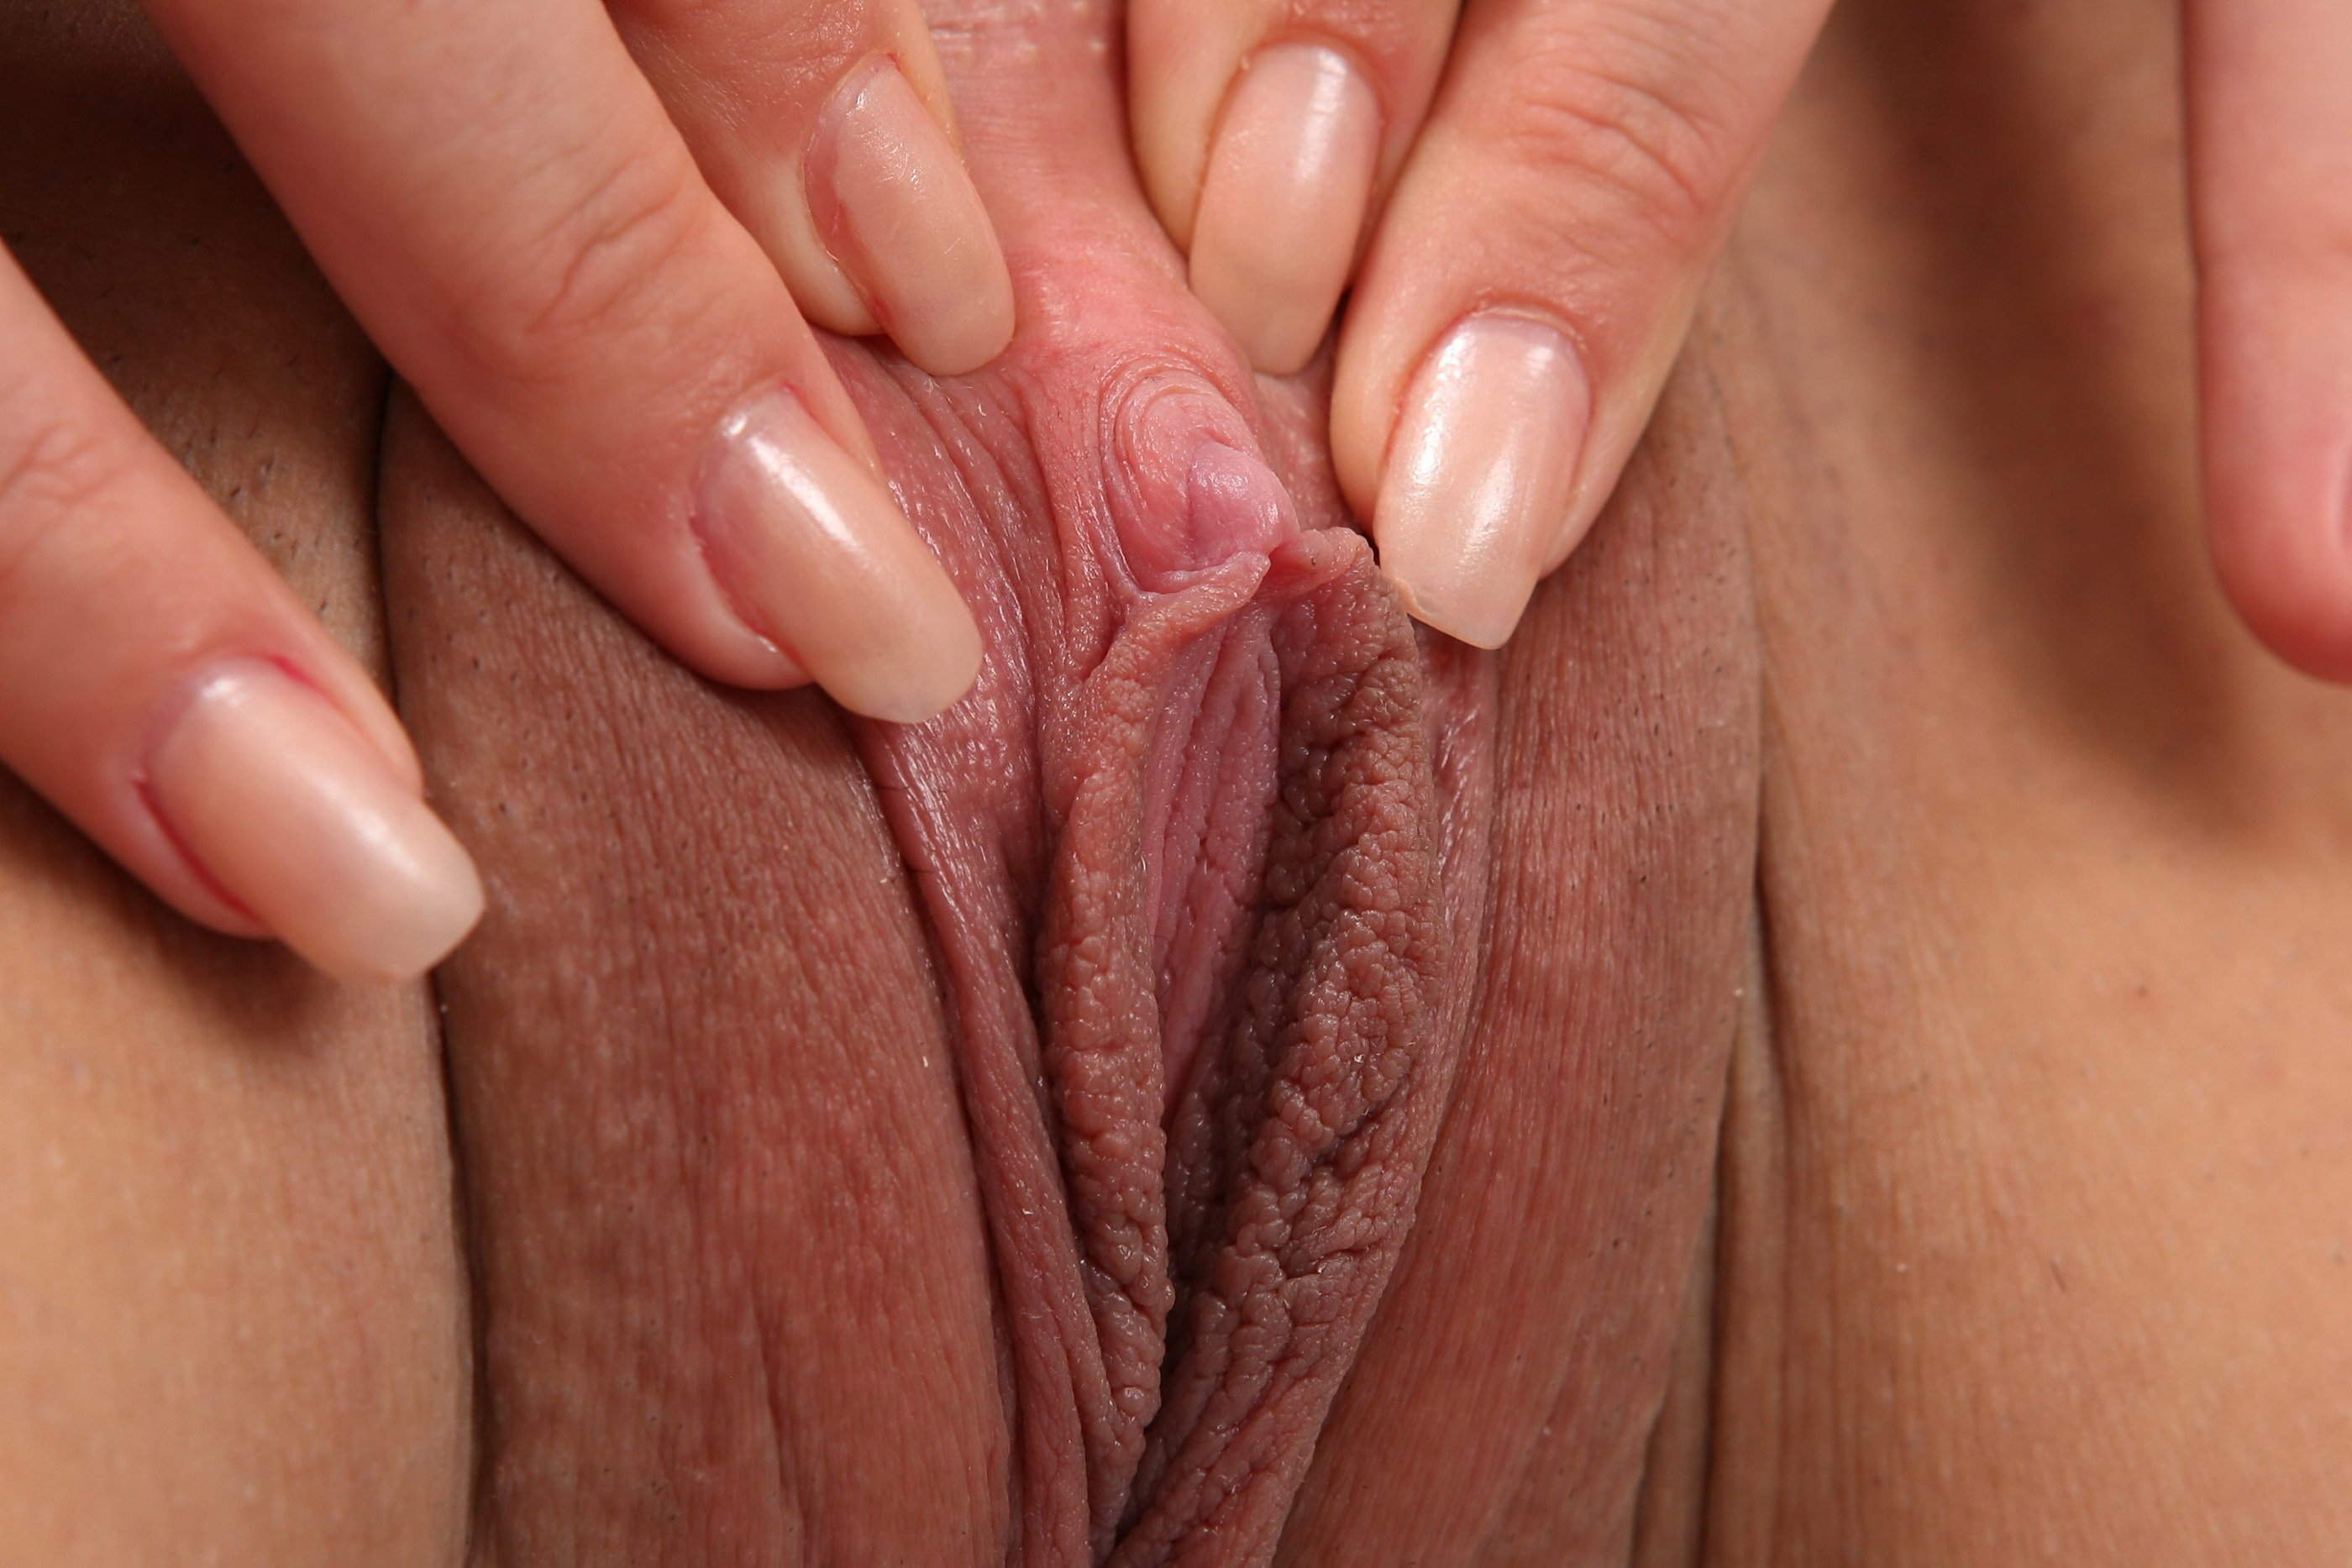 Largest and biggest pussy labia and clitoris ever nude girls pictures